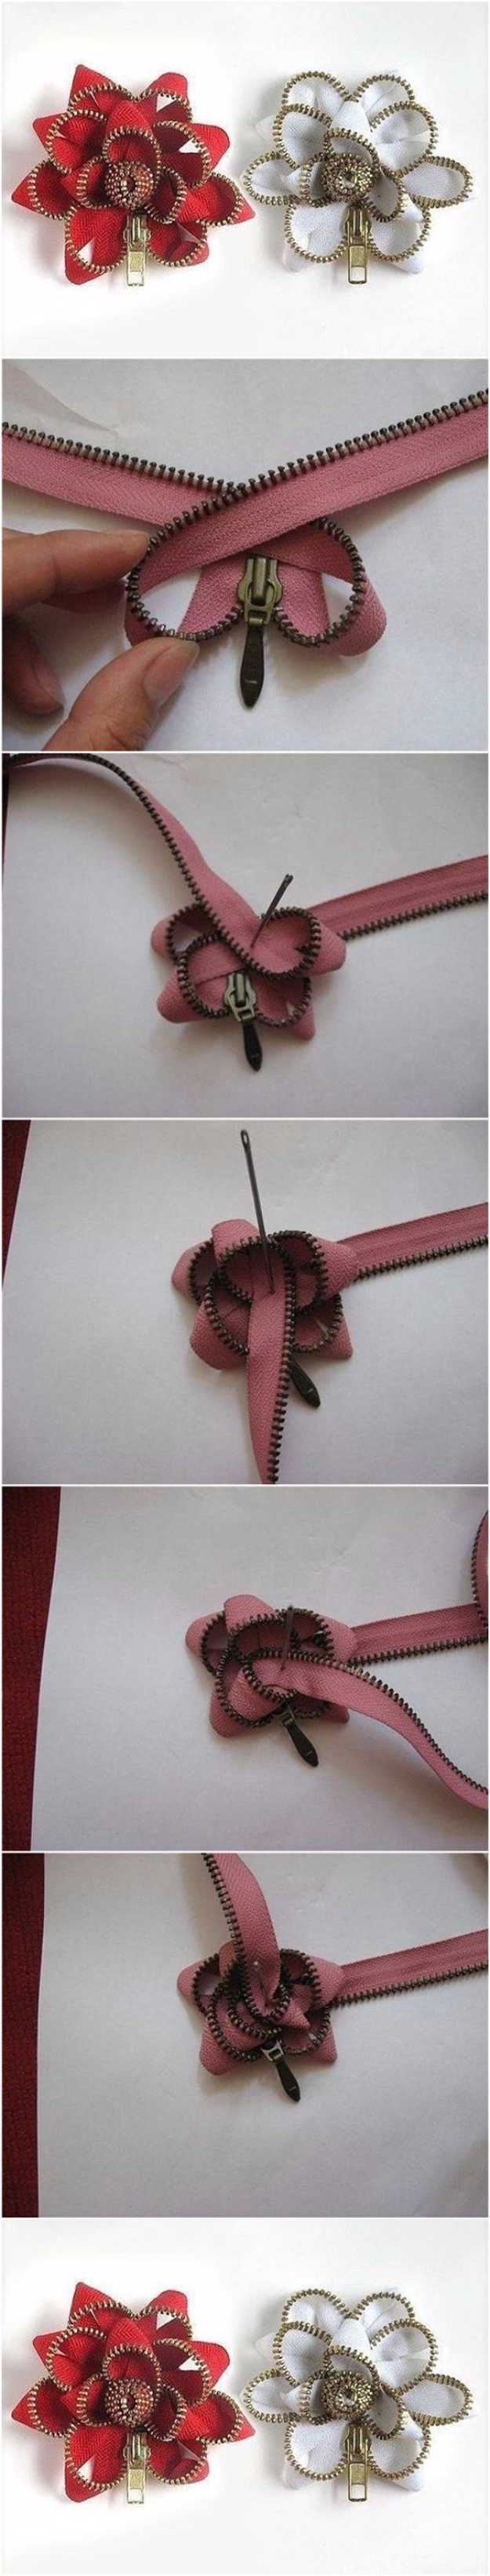 Creative DIY Projects With Zippers - Easy Zipper Flowers - Easy Crafts and Fashion Ideas With A Zipper - Jewelry, Home Decor, School Supplies and DIY Gift Ideas - Quick DIYs for Fun Weekend Projects http://diyjoy.com/diy-projects-zippers